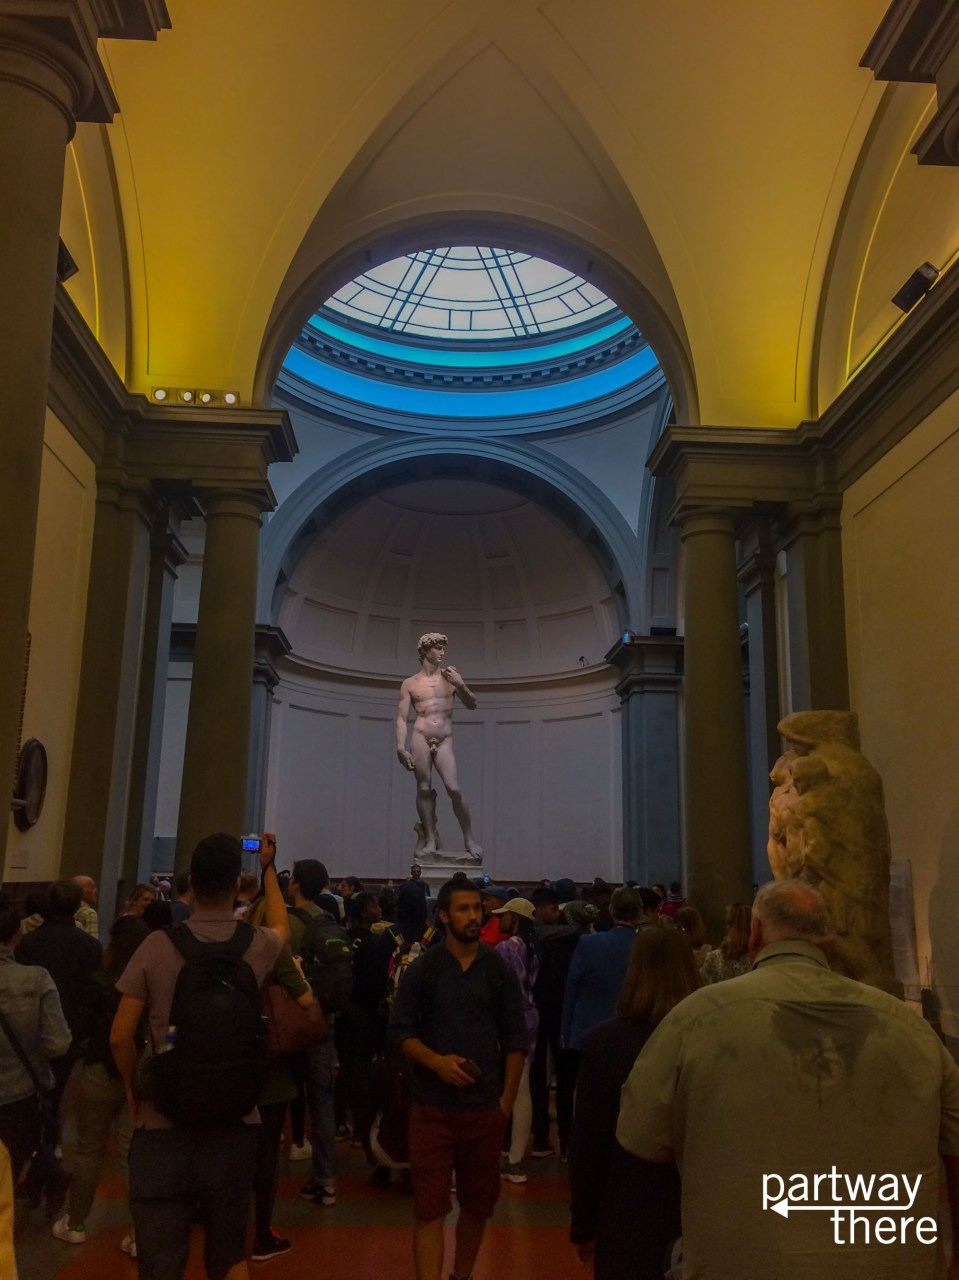 Crowds at David in Florence